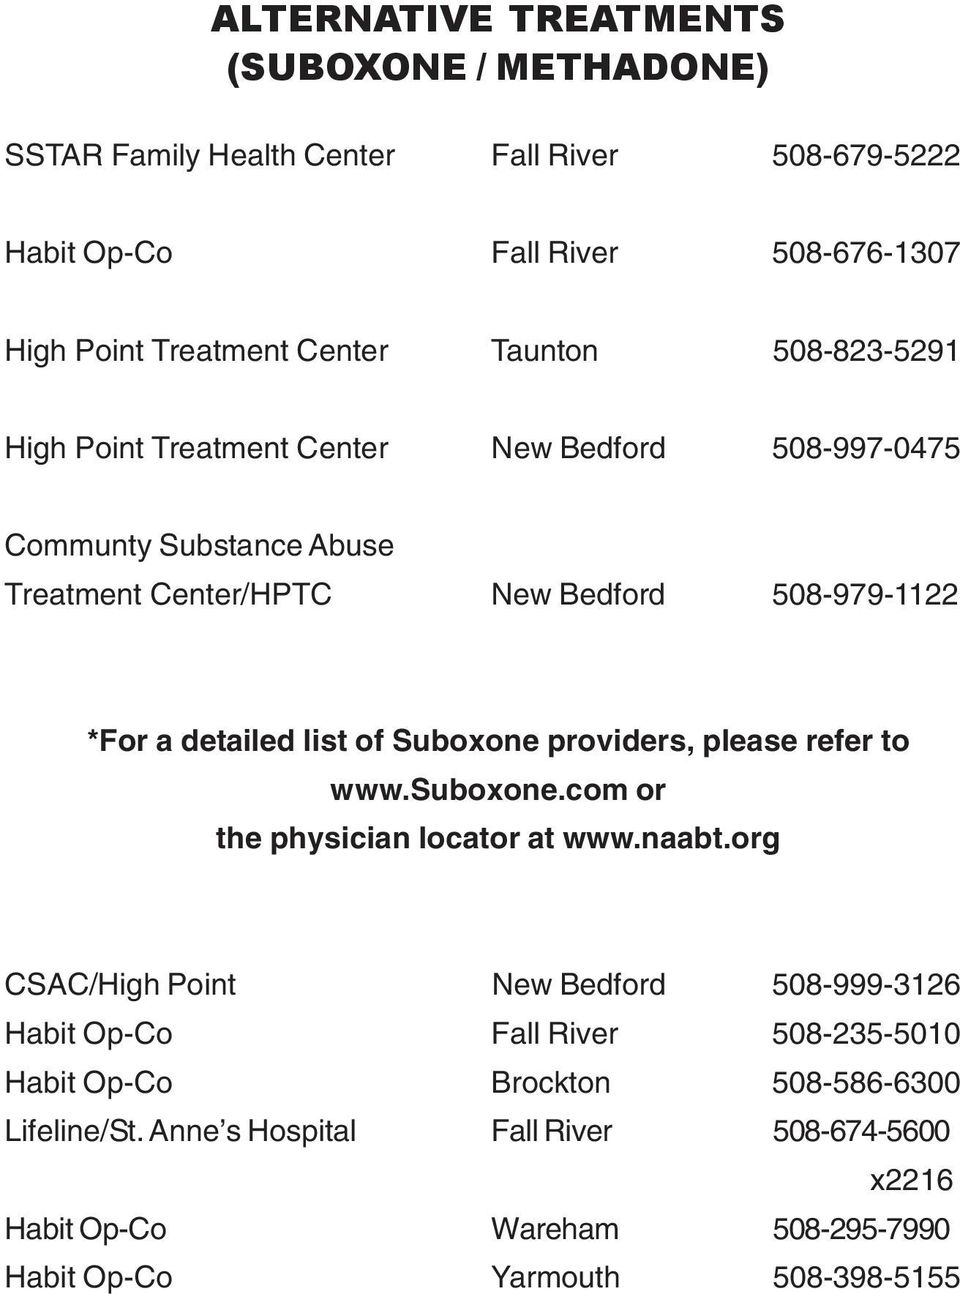 list of Suboxone providers, please refer to www.suboxone.com or the physician locator at www.naabt.